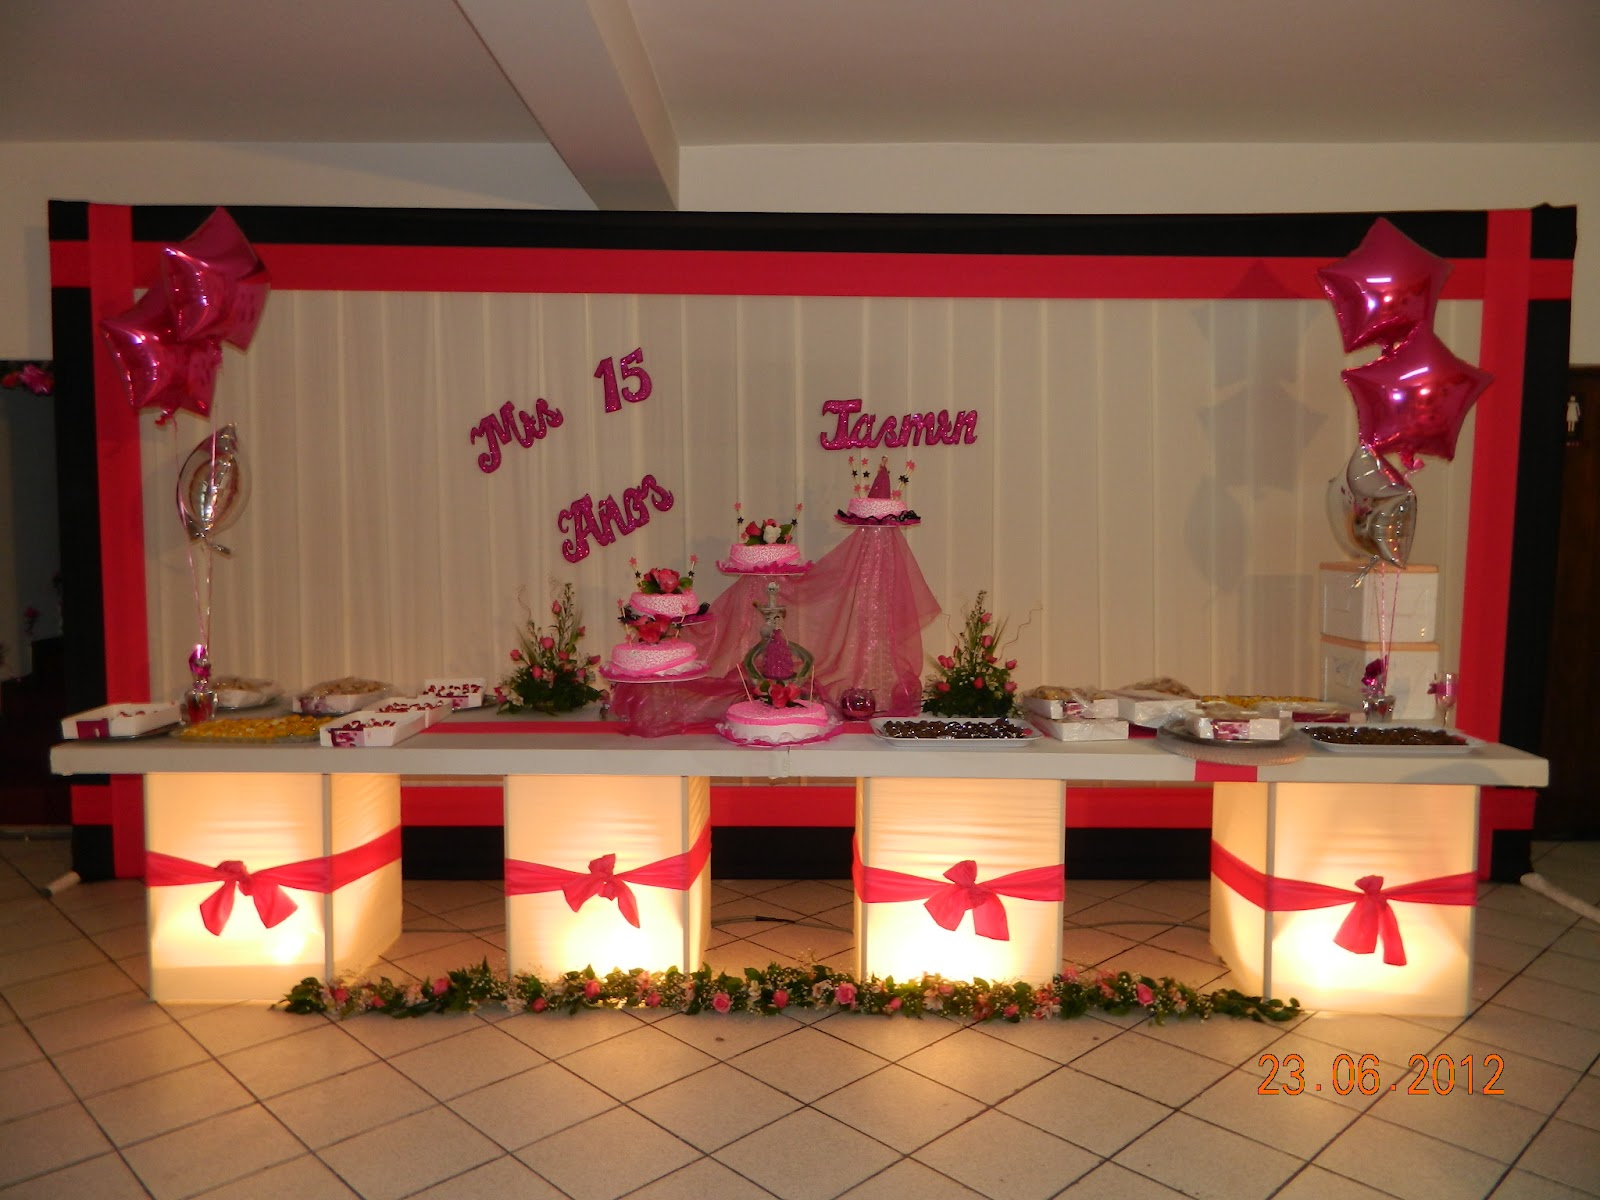 Decoraciones para mesas de quinceaneras auto design tech - Decoraciones para mesas ...